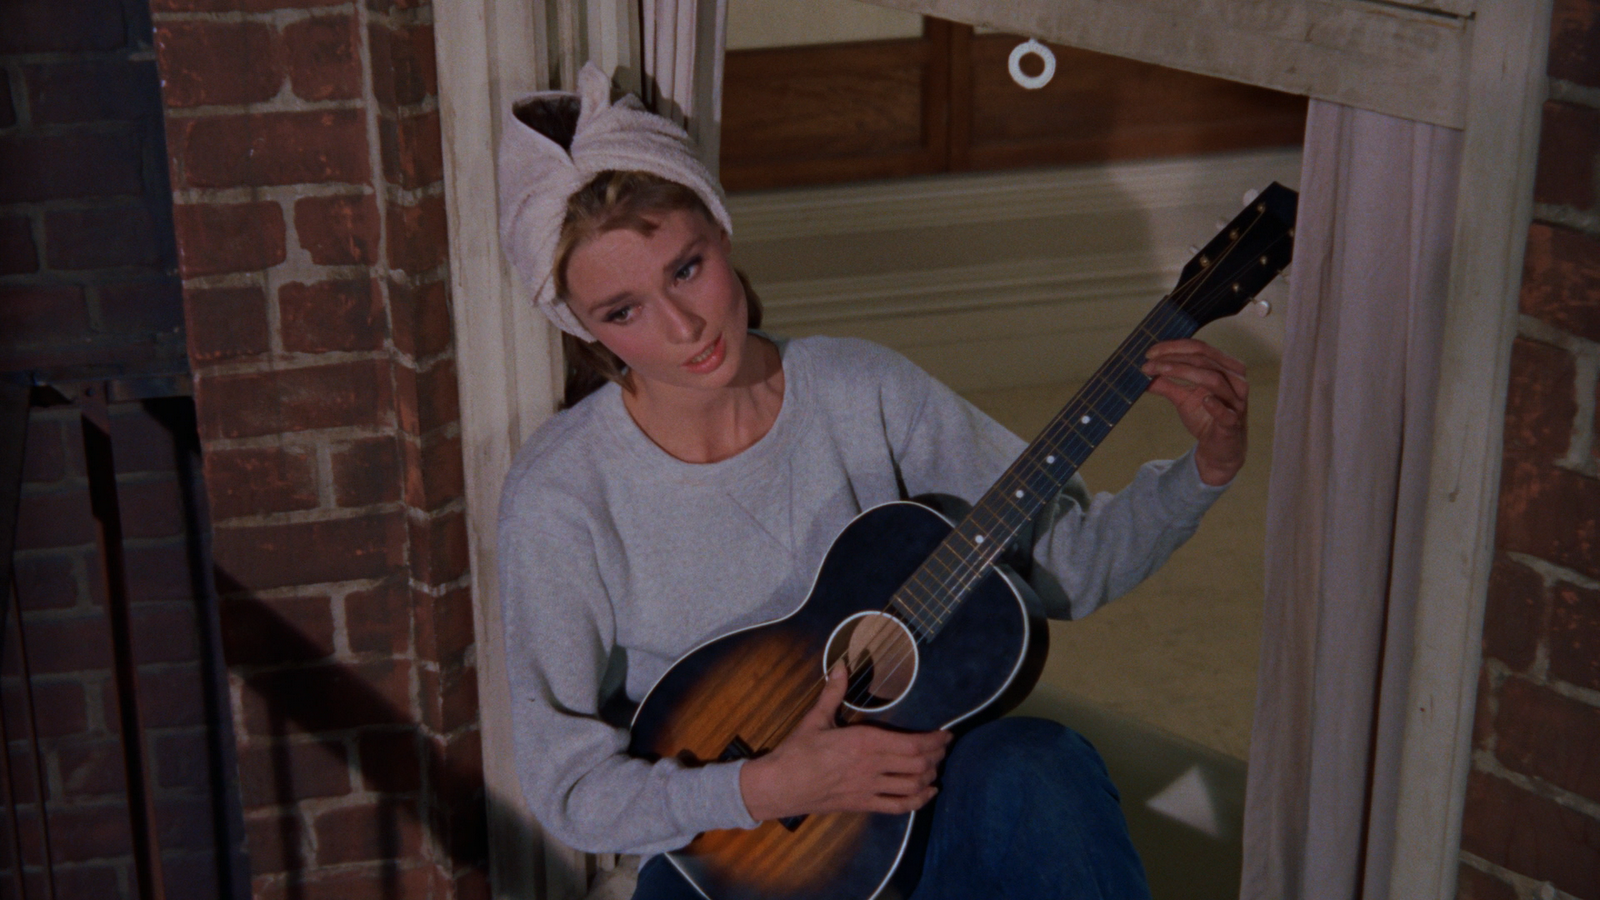 an analysis of the movie breakfast at tiffanys Breakfast at tiffany's is a 1961 american romantic comedy film directed by blake  edwards and written by george axelrod, loosely based on truman capote's.